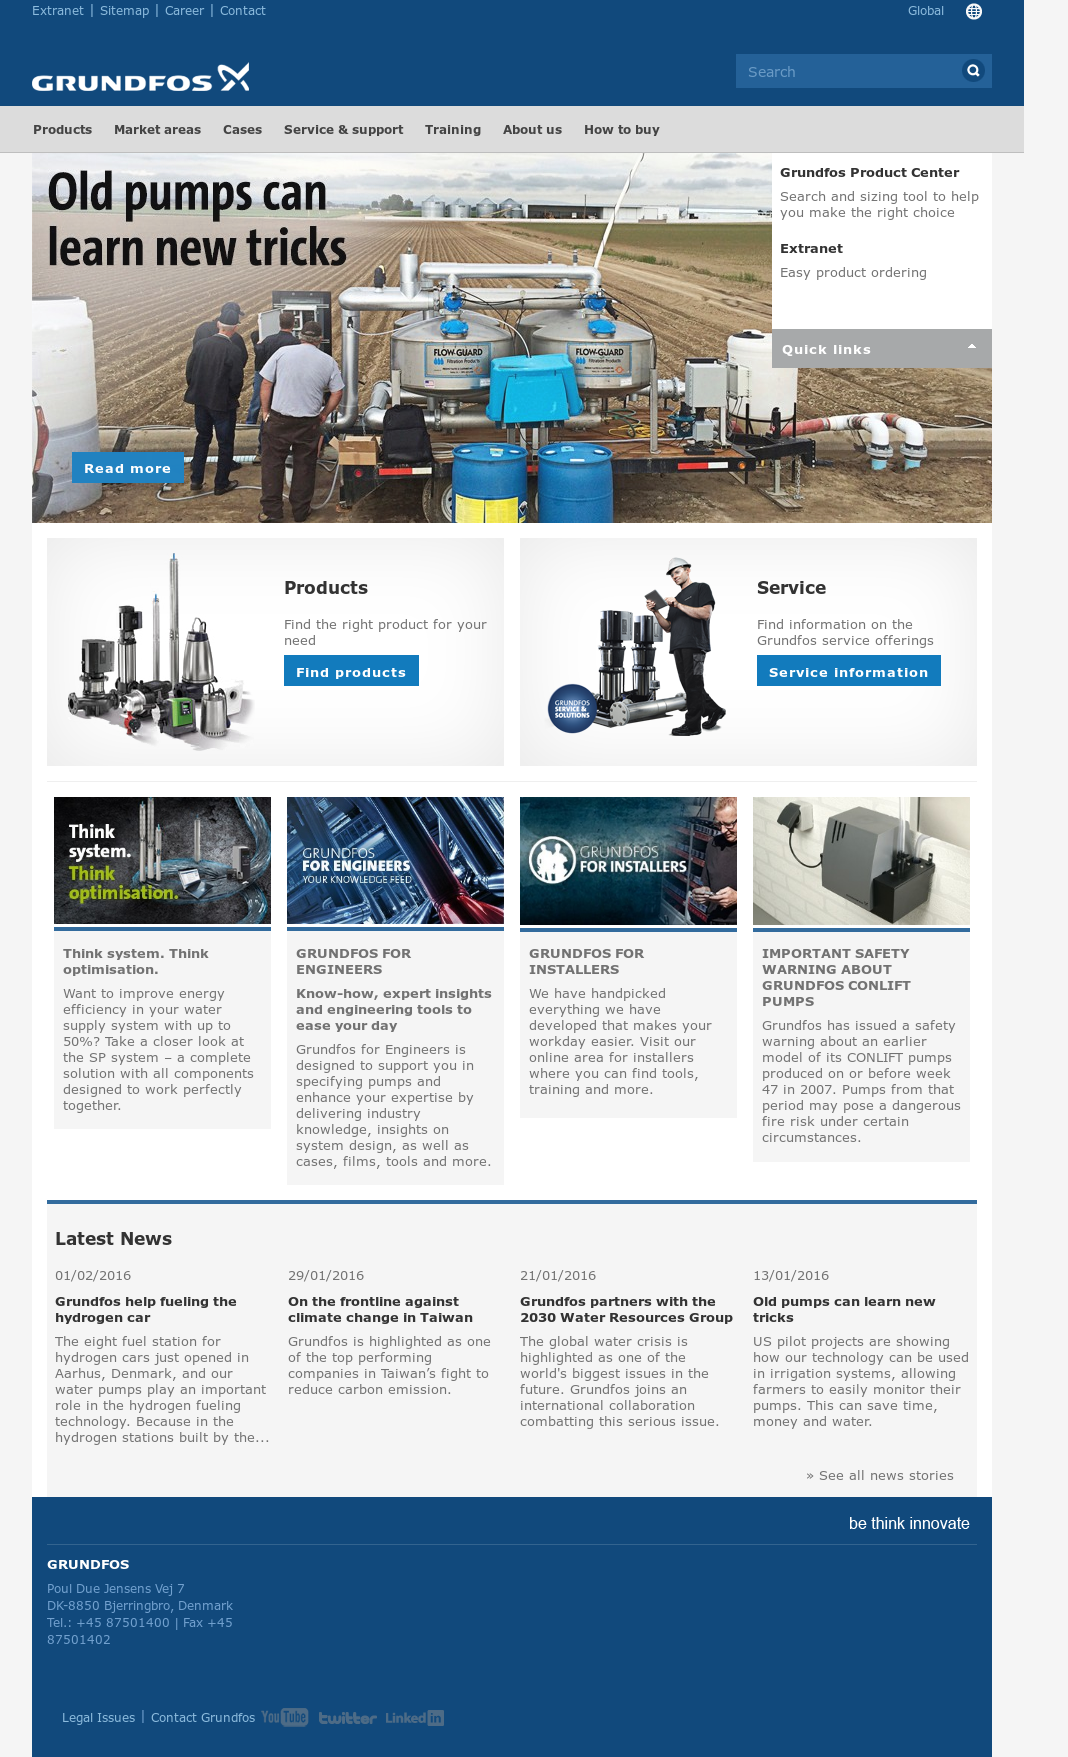 Grundfos Competitors, Revenue and Employees - Owler Company